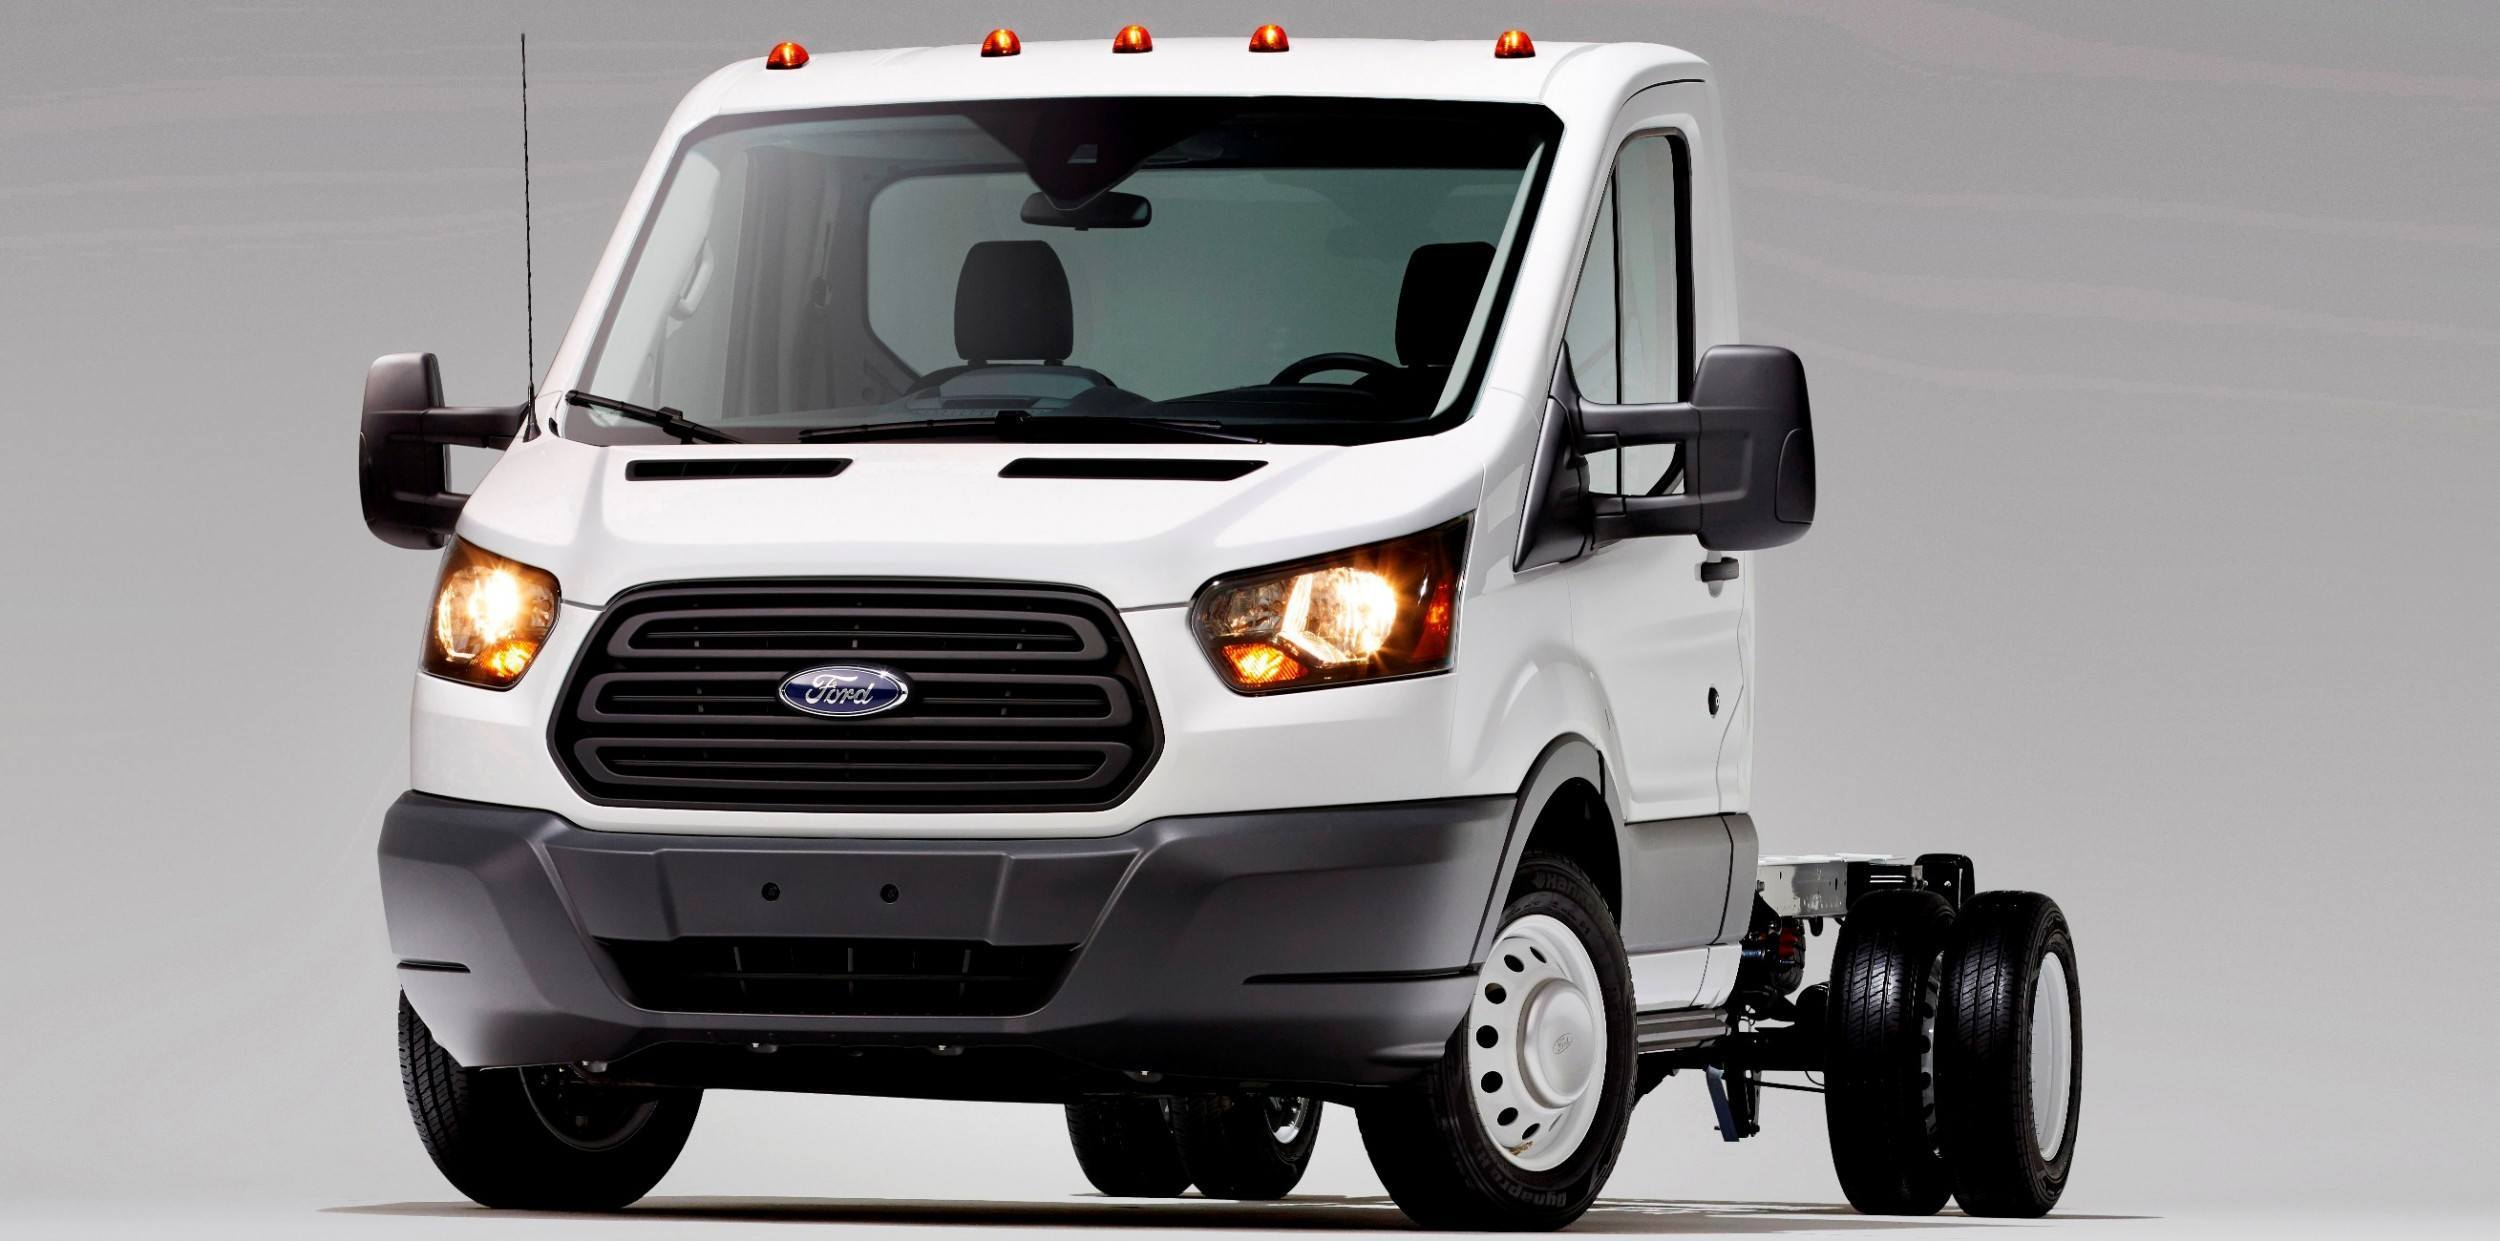 defogger camera cloth park passenger van rear ford shift charcoal power window speed windows select view interior reverse transit transmission automatic fleet img aid